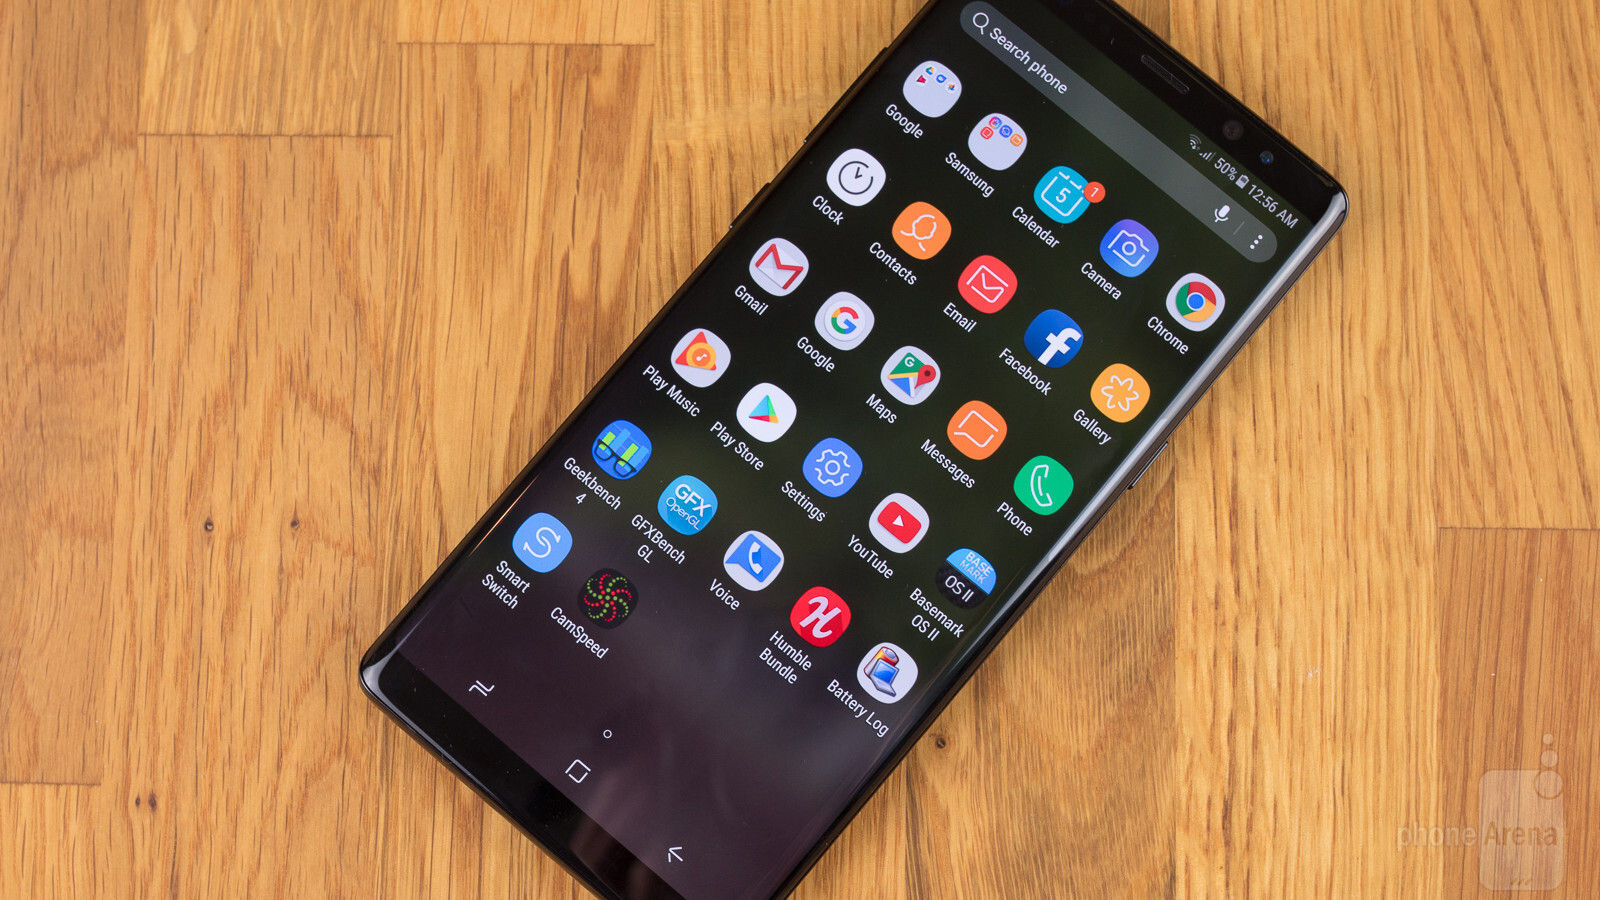 samsung galaxy note 8 review interface and functionality. Black Bedroom Furniture Sets. Home Design Ideas